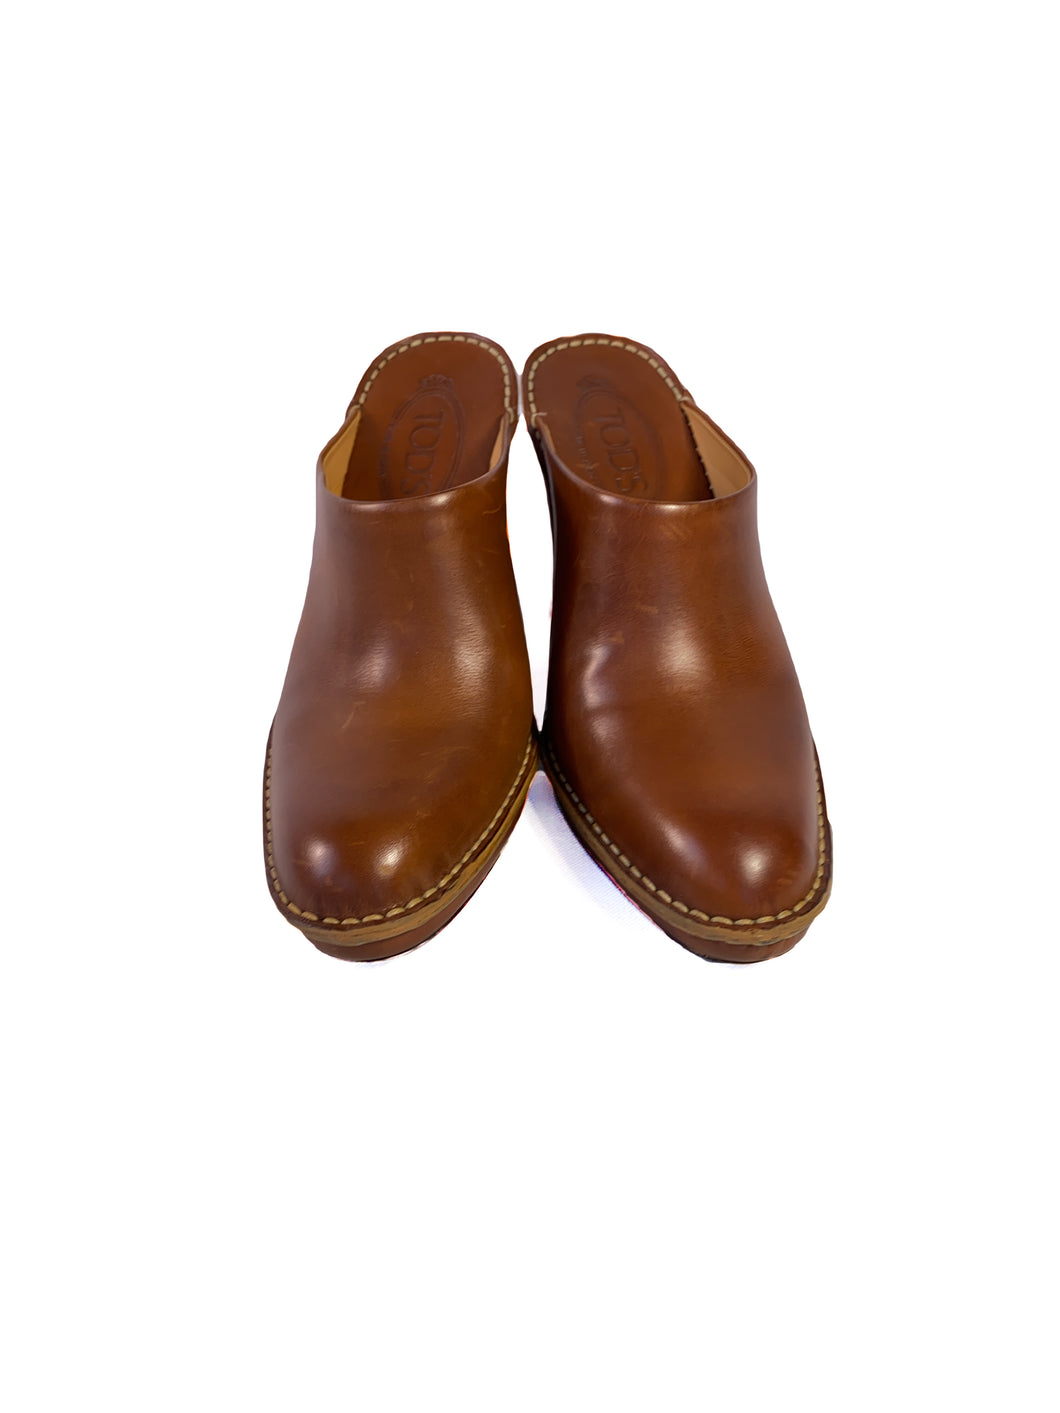 Tod's brown leather mules size 8.5